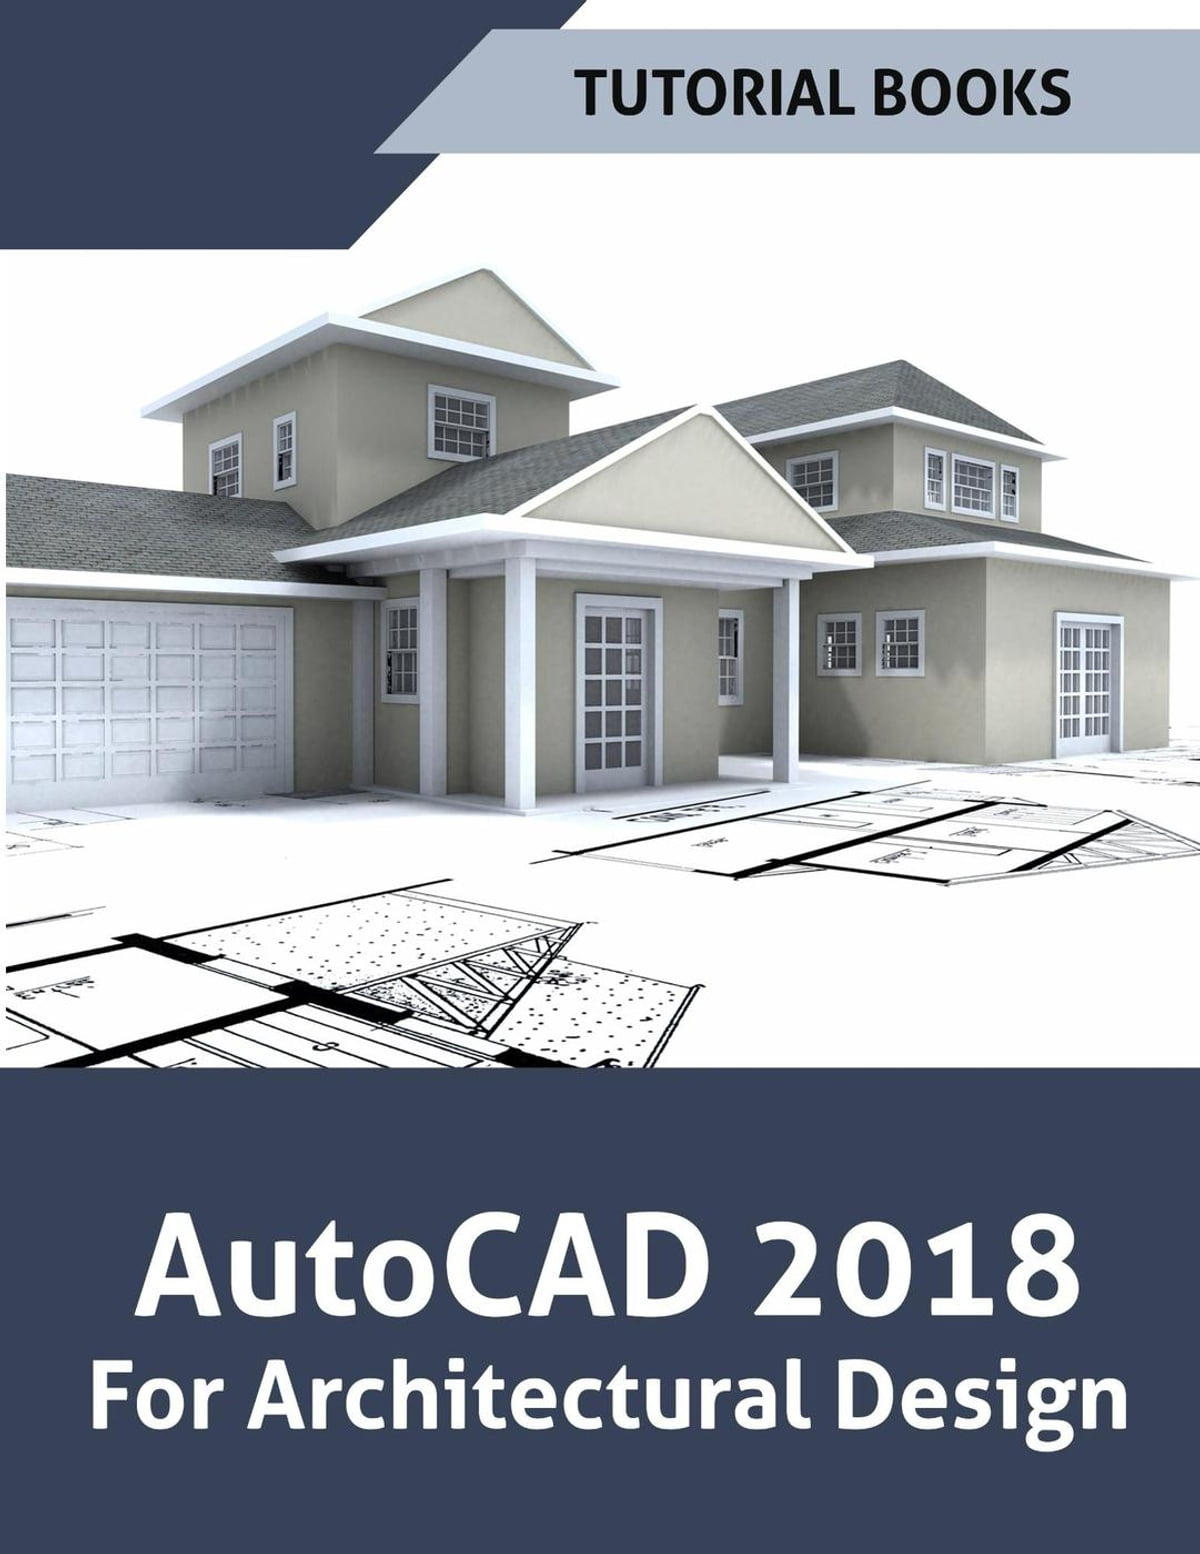 Autocad 2018 for architectural design ebook by tutorial books autocad 2018 for architectural design ebook by tutorial books 9781386719083 rakuten kobo baditri Image collections